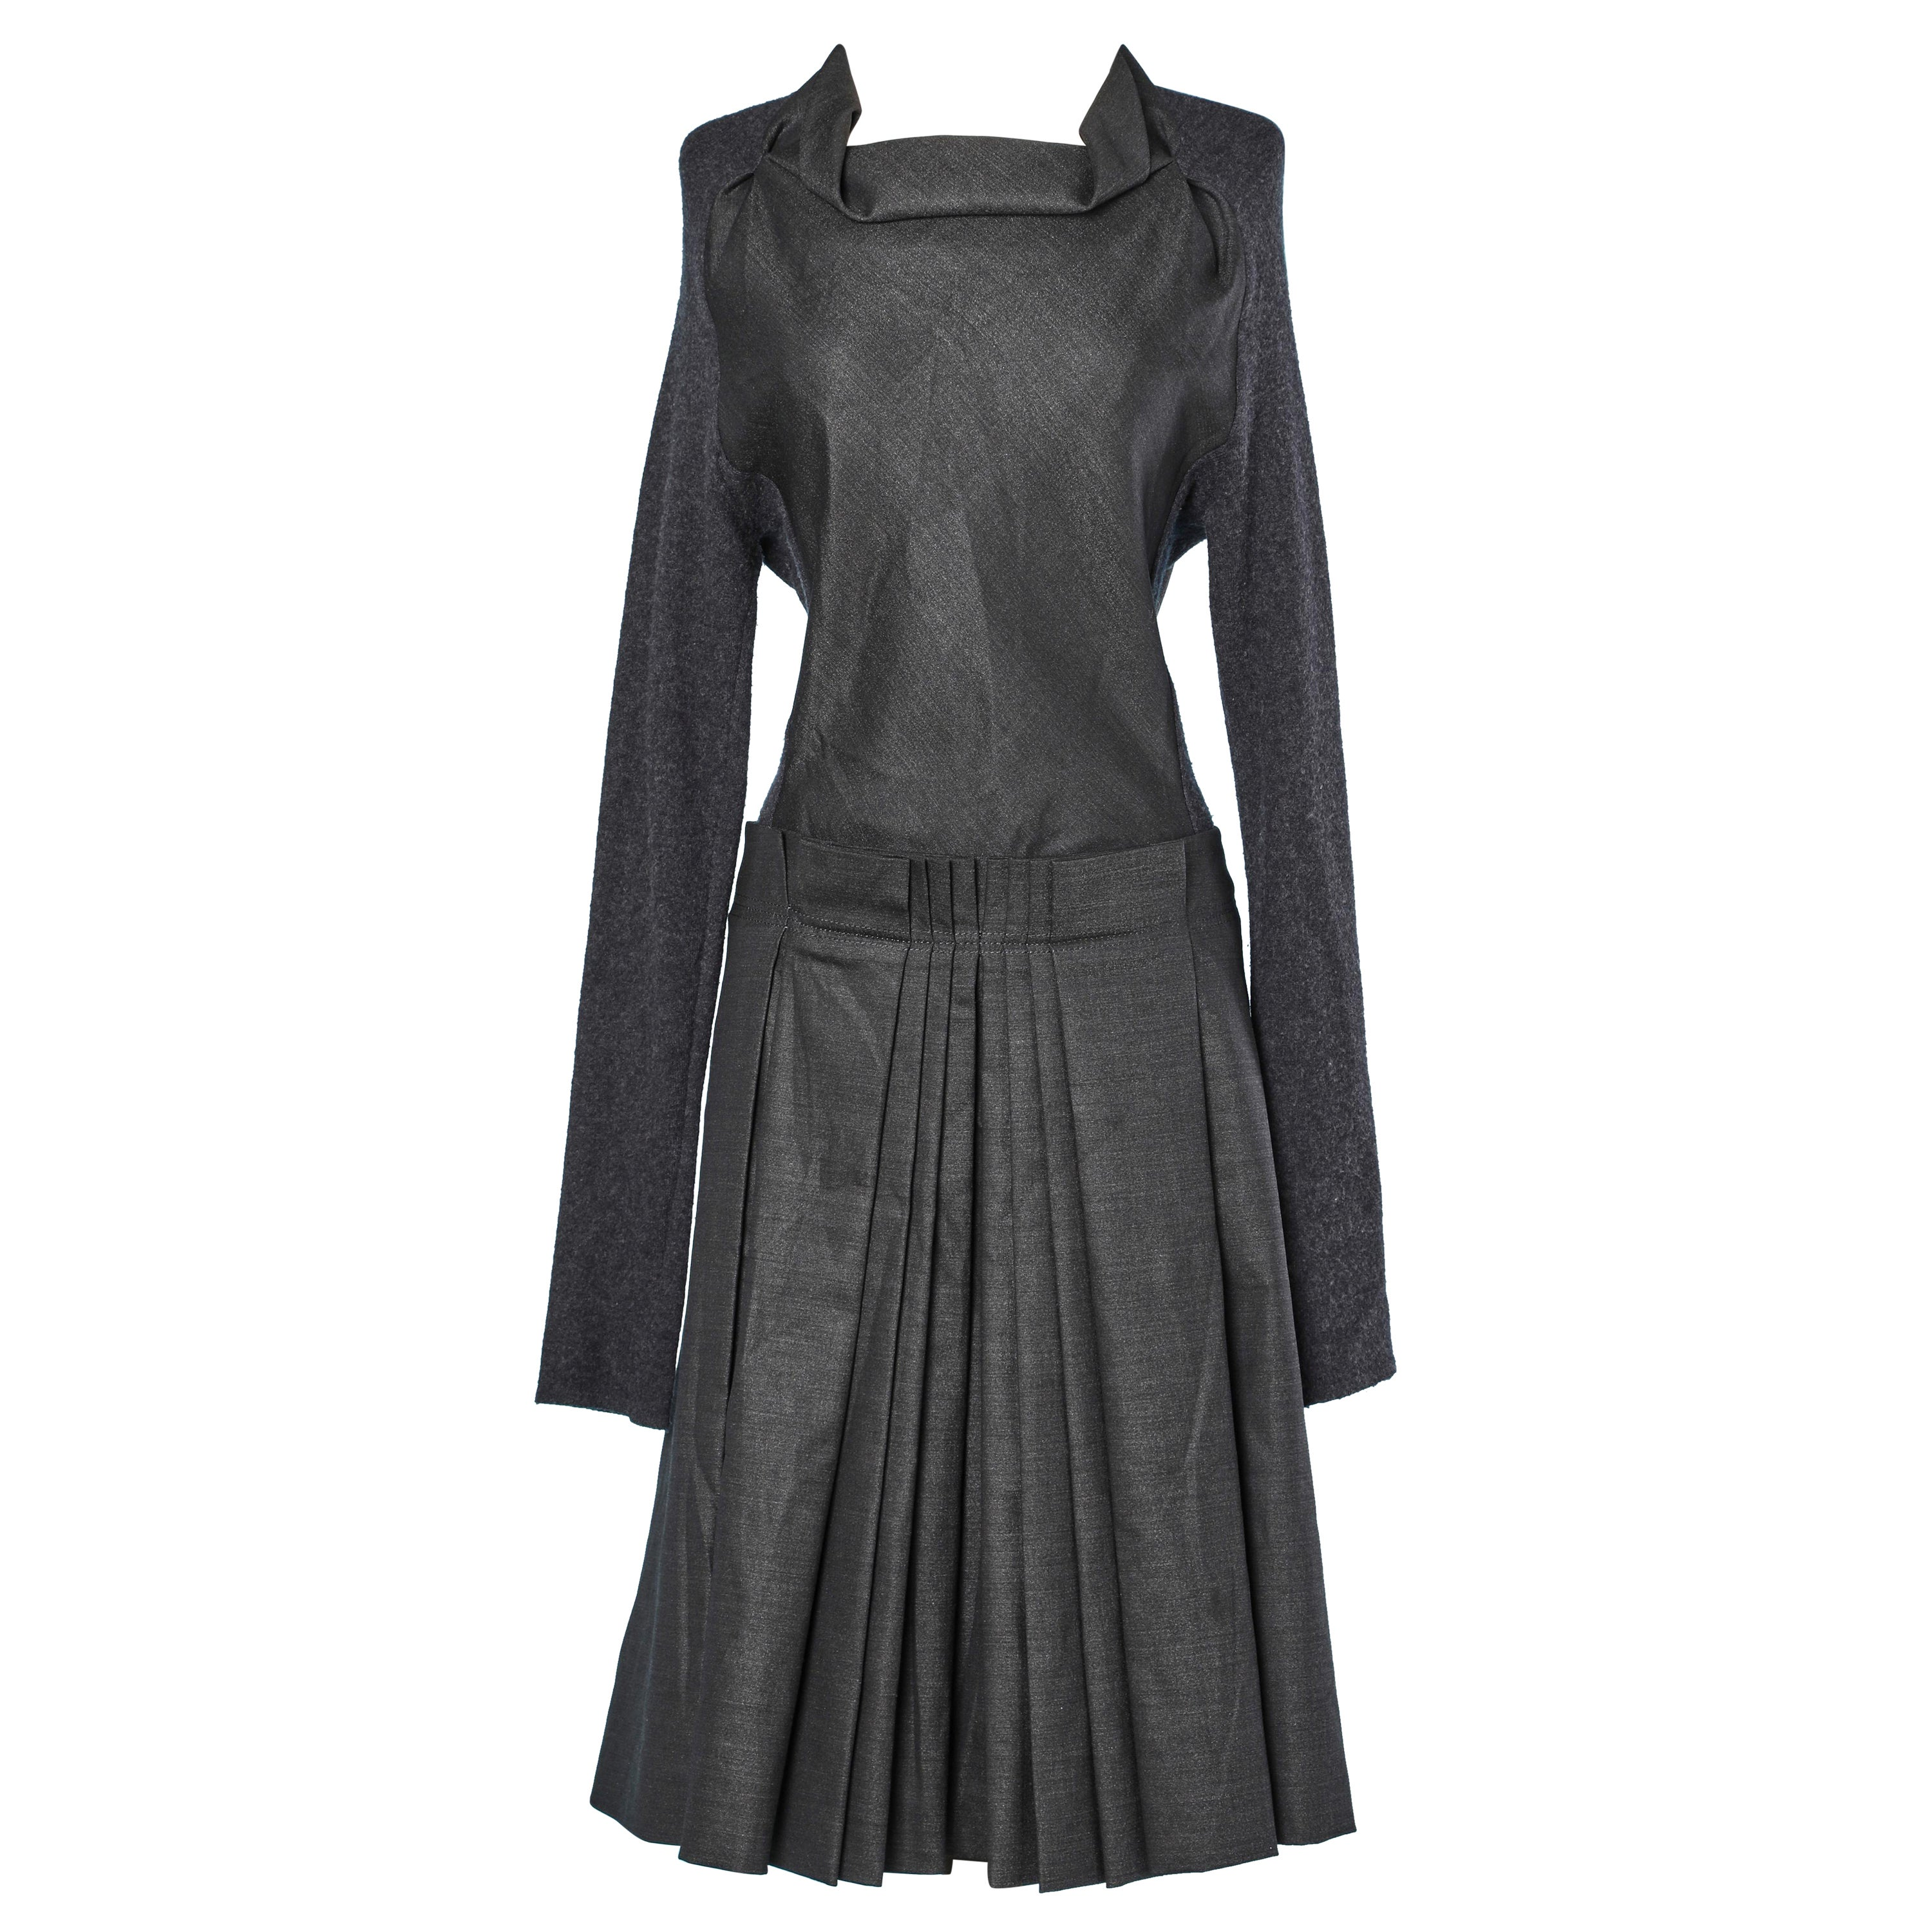 Grey dress in knit and wool Jacques Fath